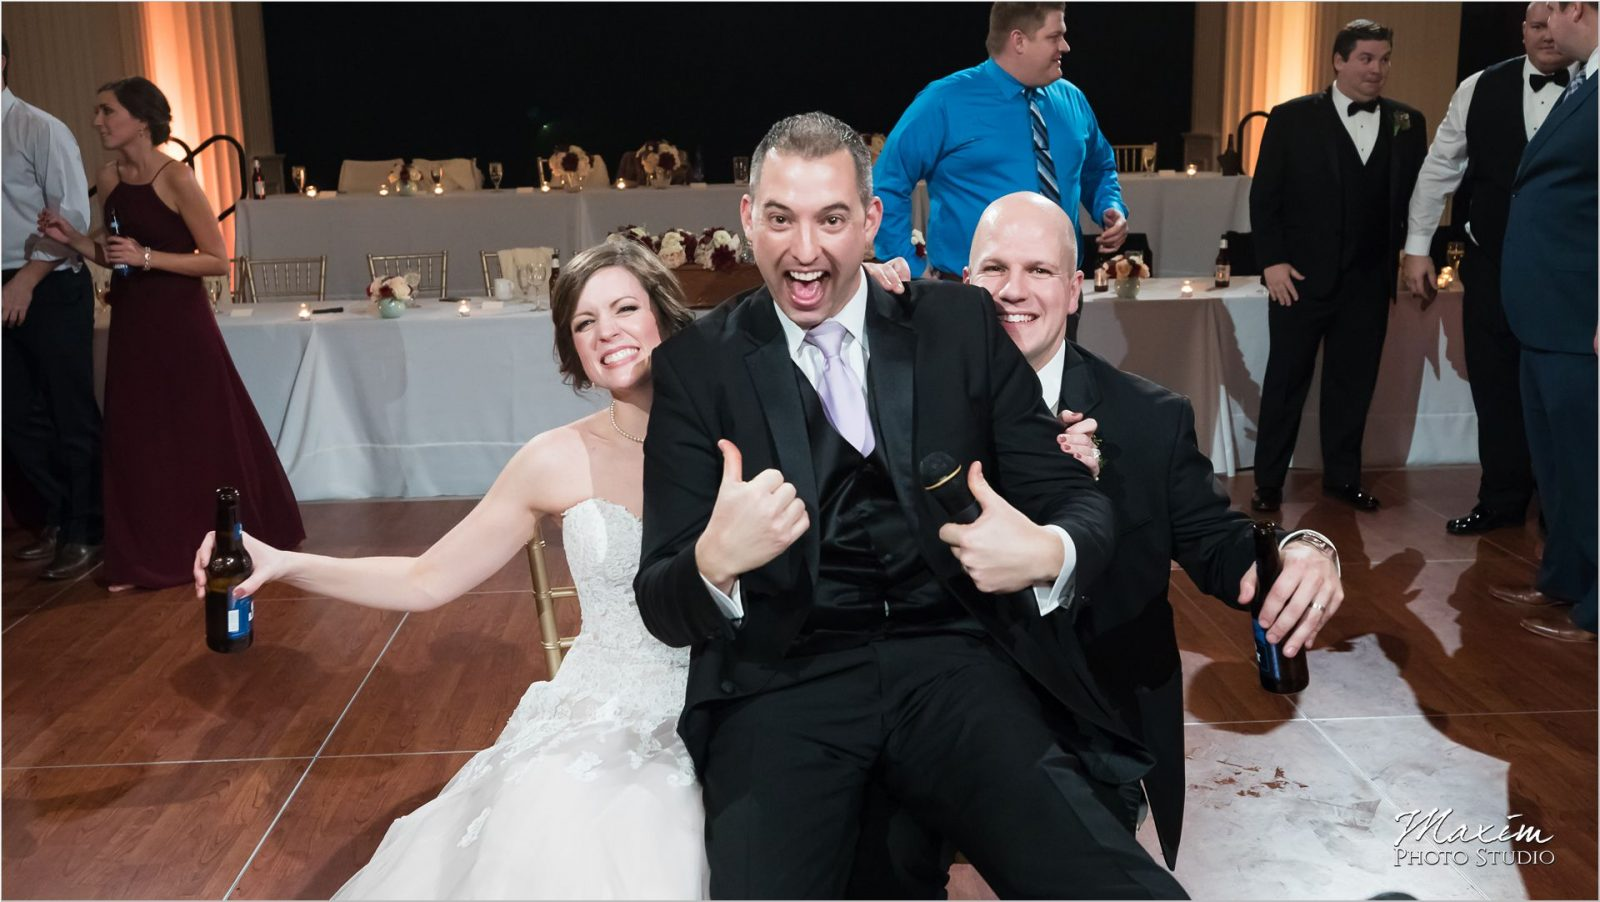 Renaissance Hotel Wedding reception photo bomb Jeff Clarke Party Pleasers